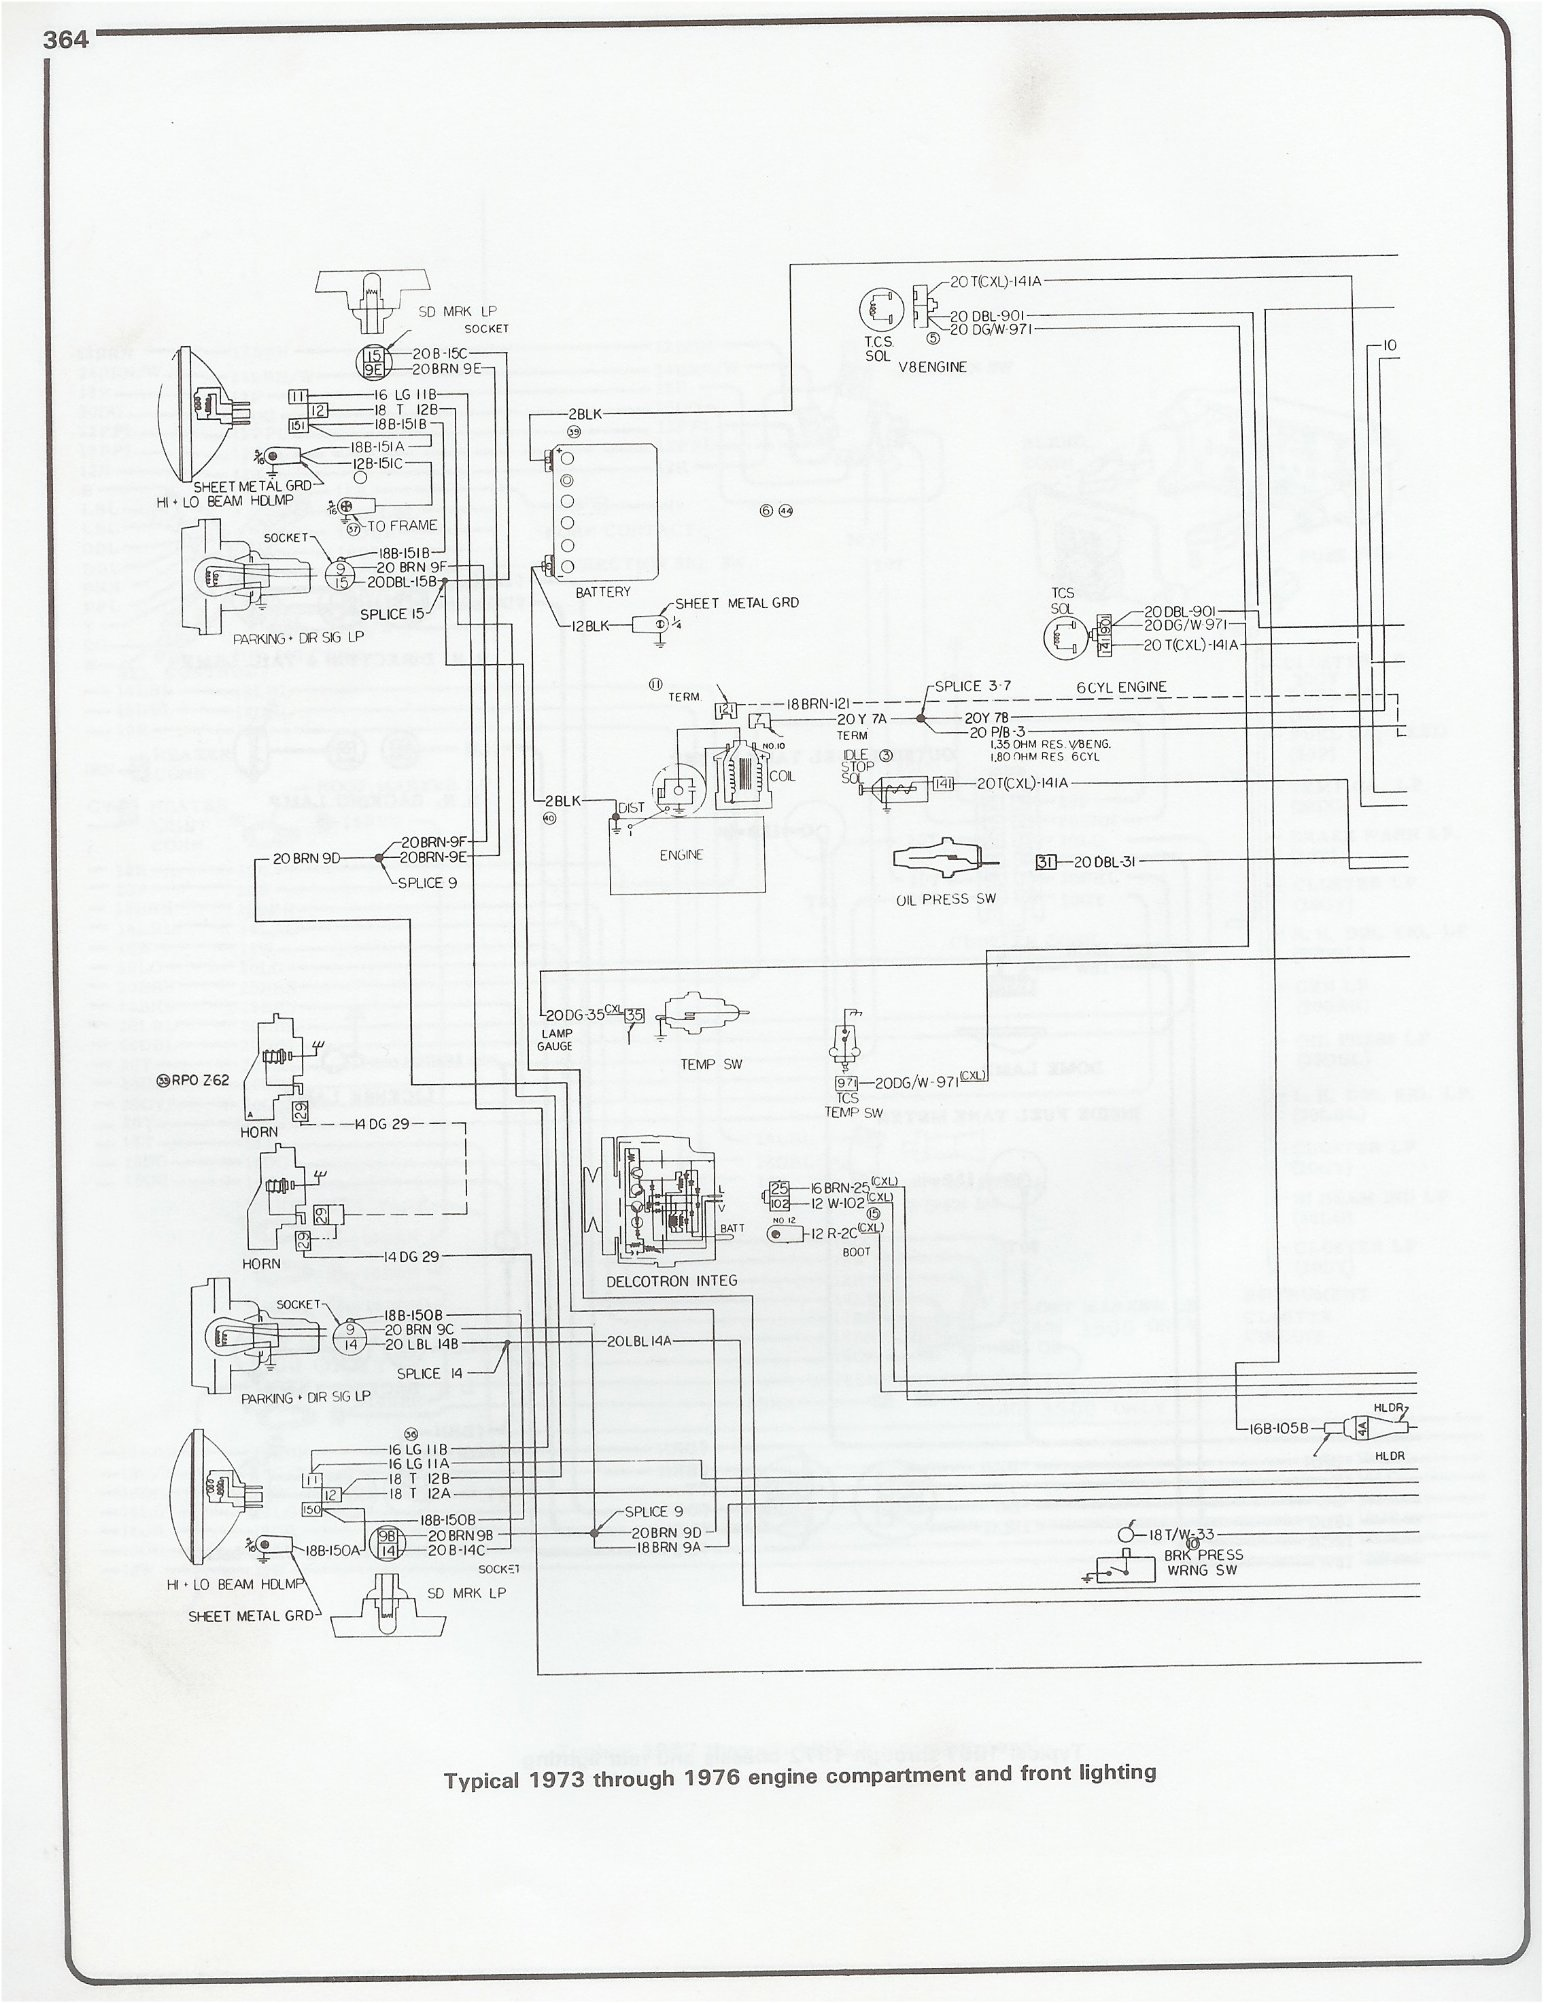 73 Corvette Wiring Diagram Worksheet And 1972 1973 C65 Detailed Schematics Rh Jvpacks Com